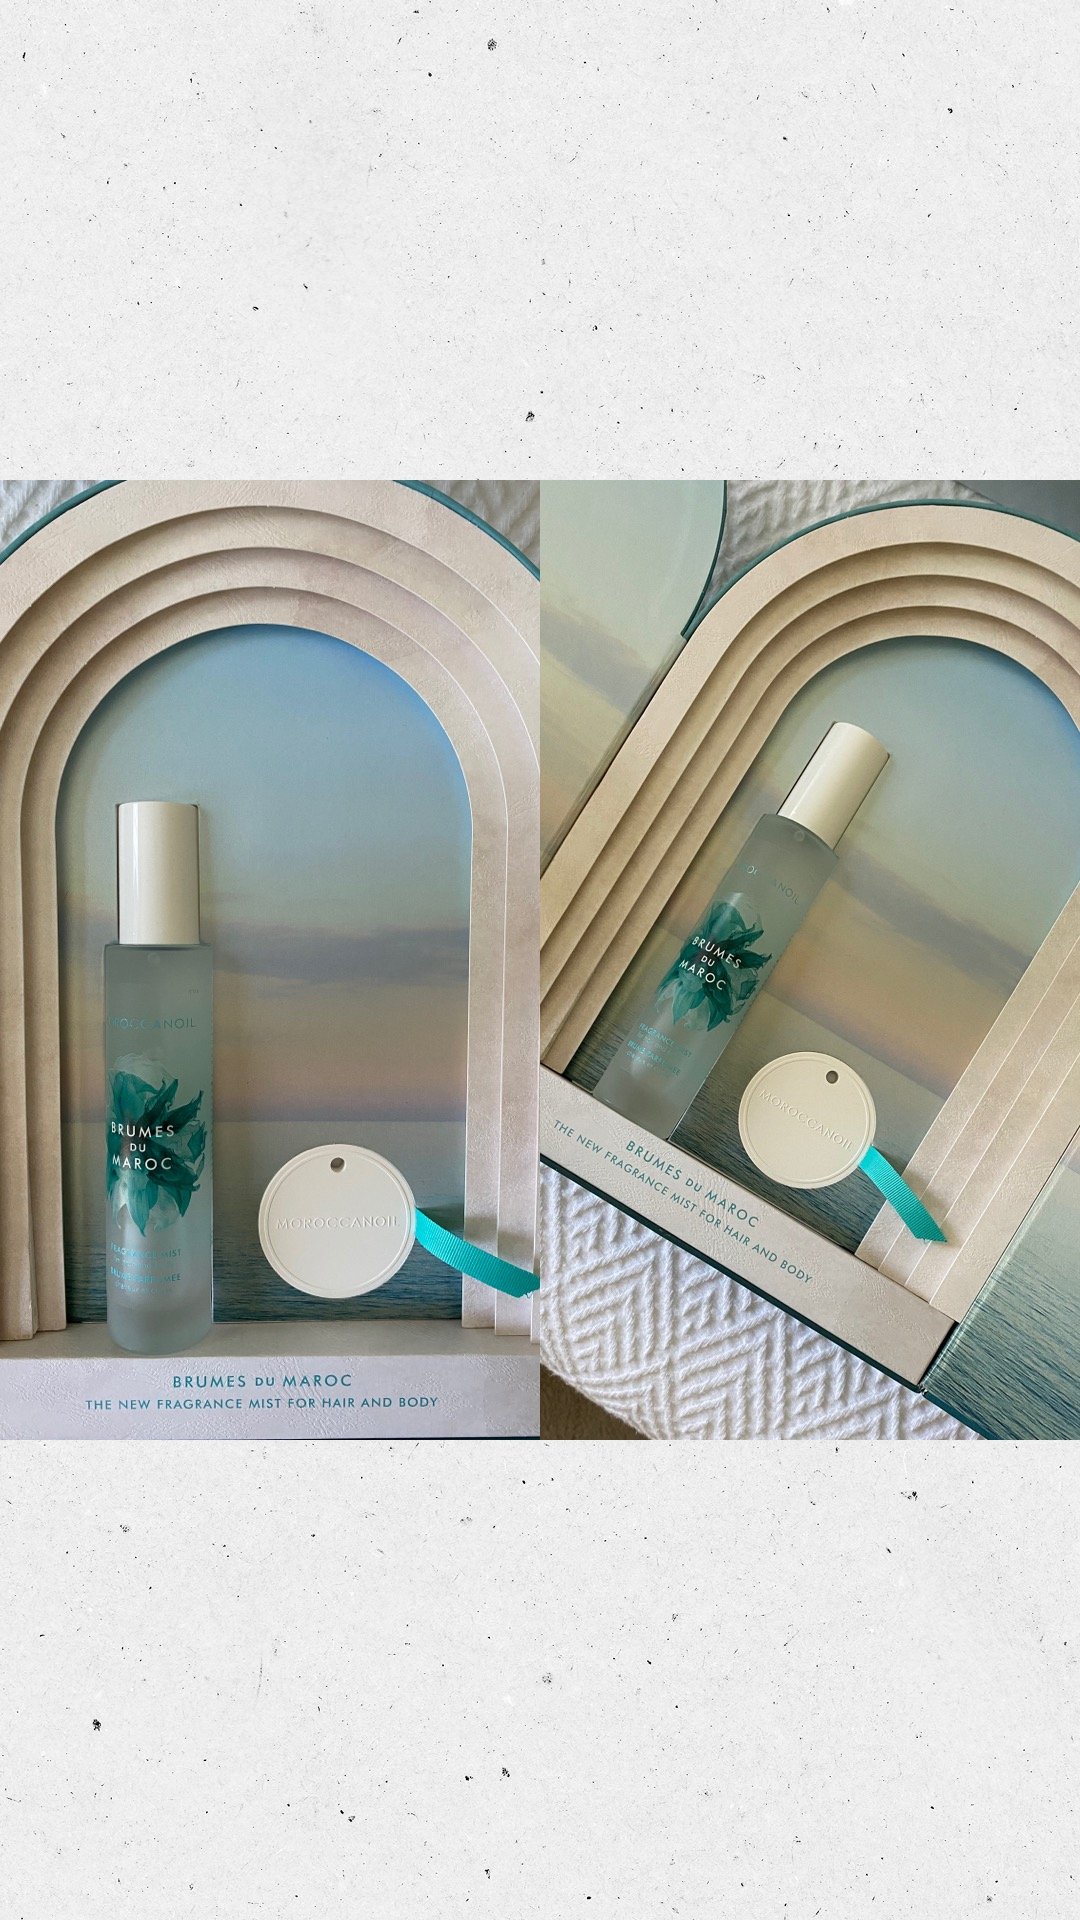 Moroccanoil Hair & Body Fragrance Mist: A quick review